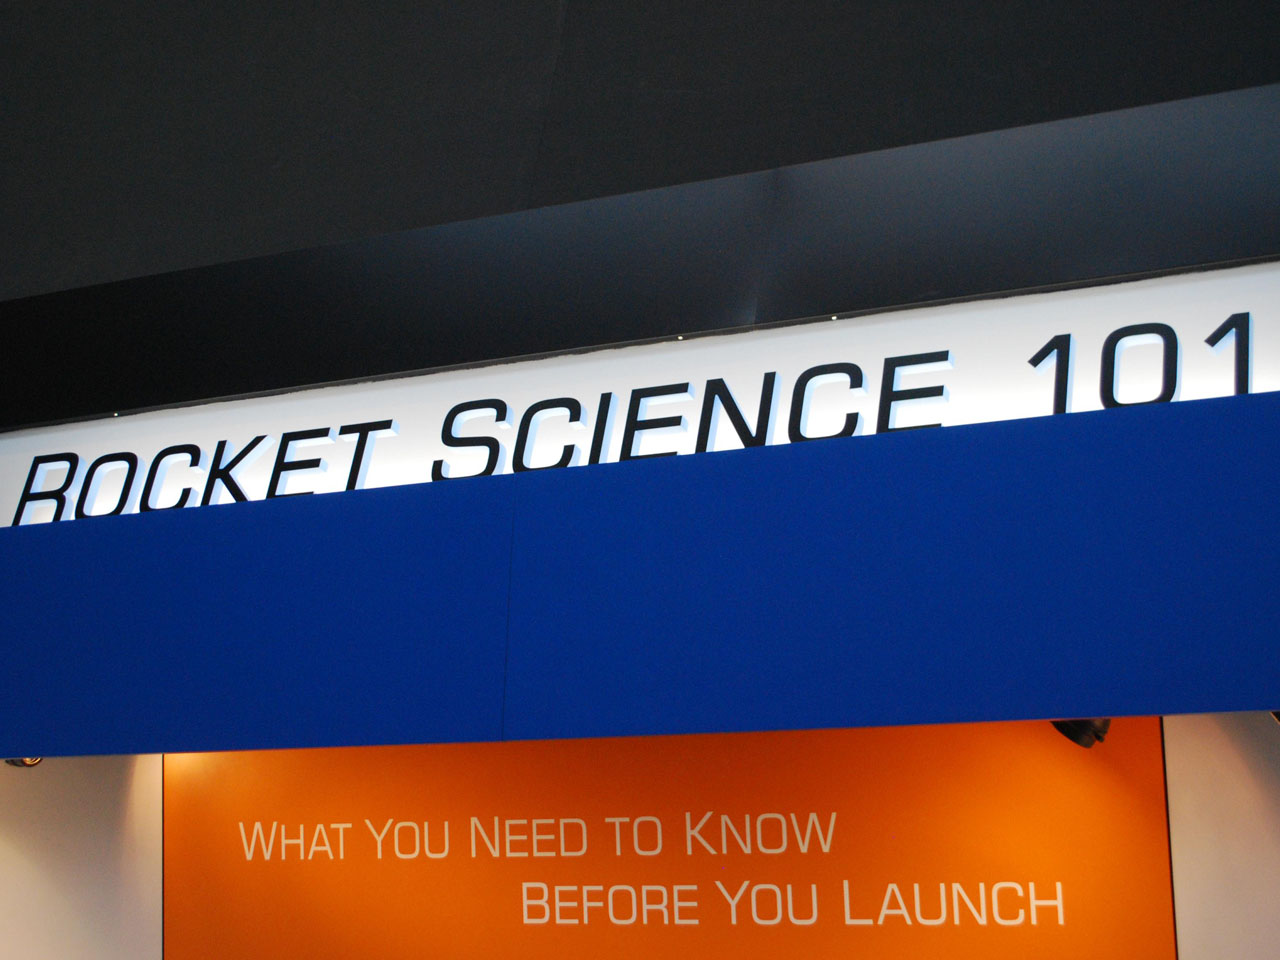 rocket science 101 banner